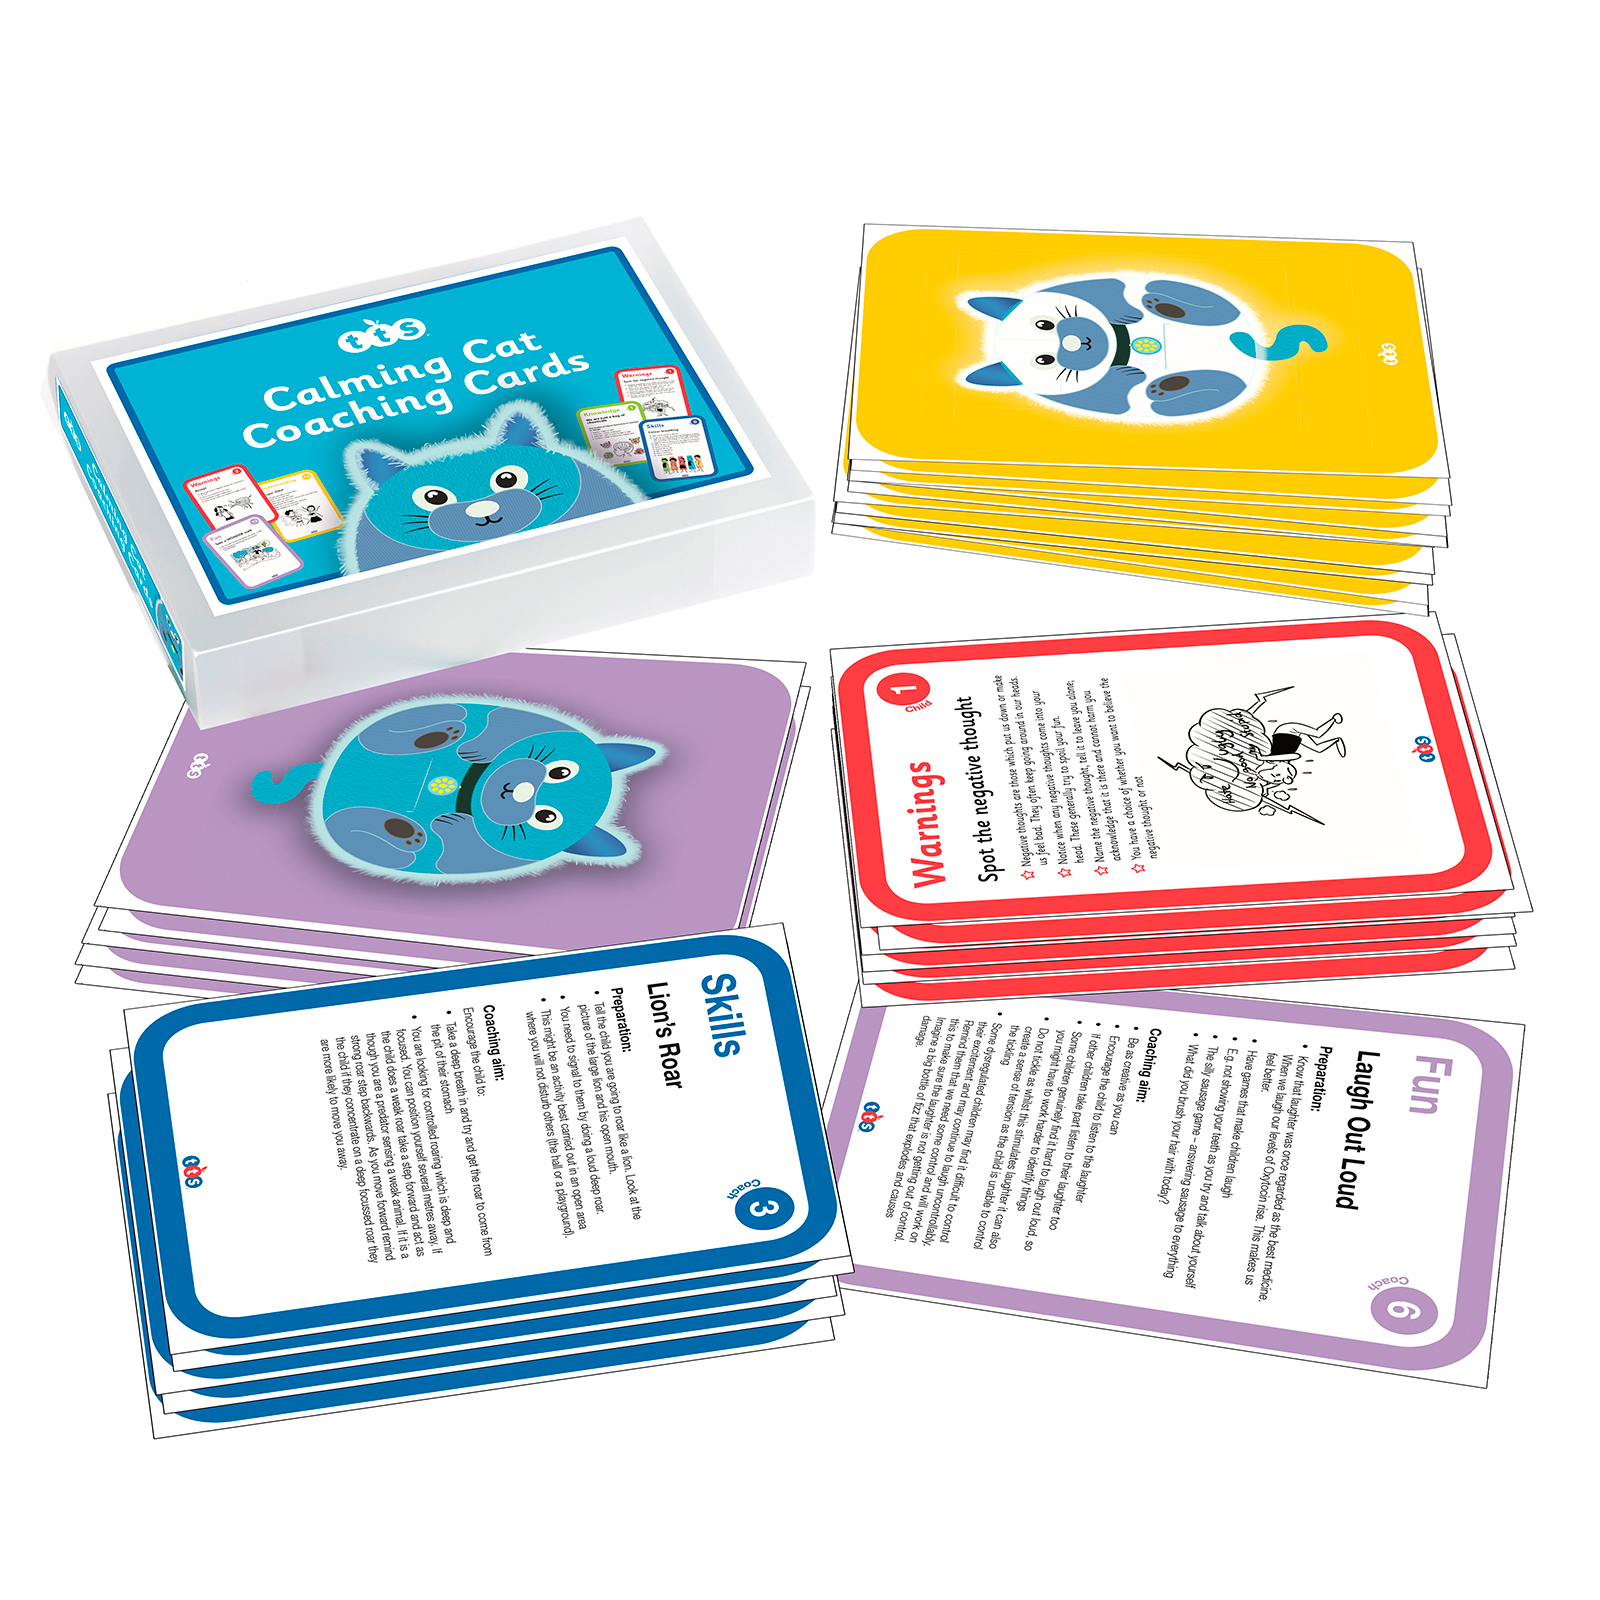 Calming Cat Coaching Cards for Supporting Emotional Wellbeing